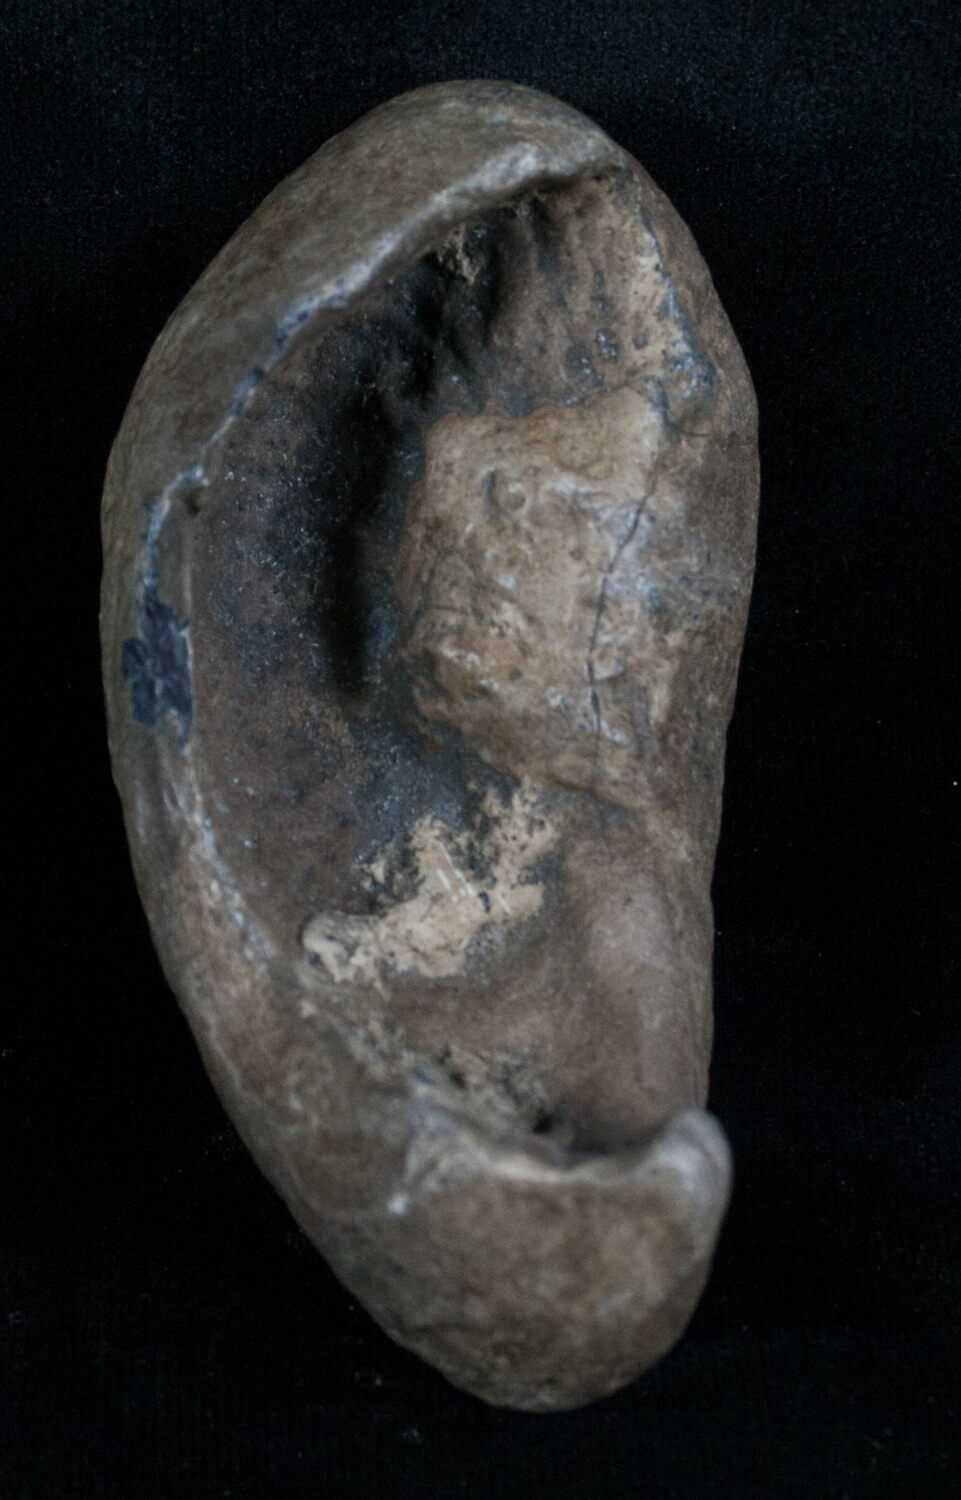 3 Quot Tall Fossil Whale Ear Bone Venice Florida For Sale